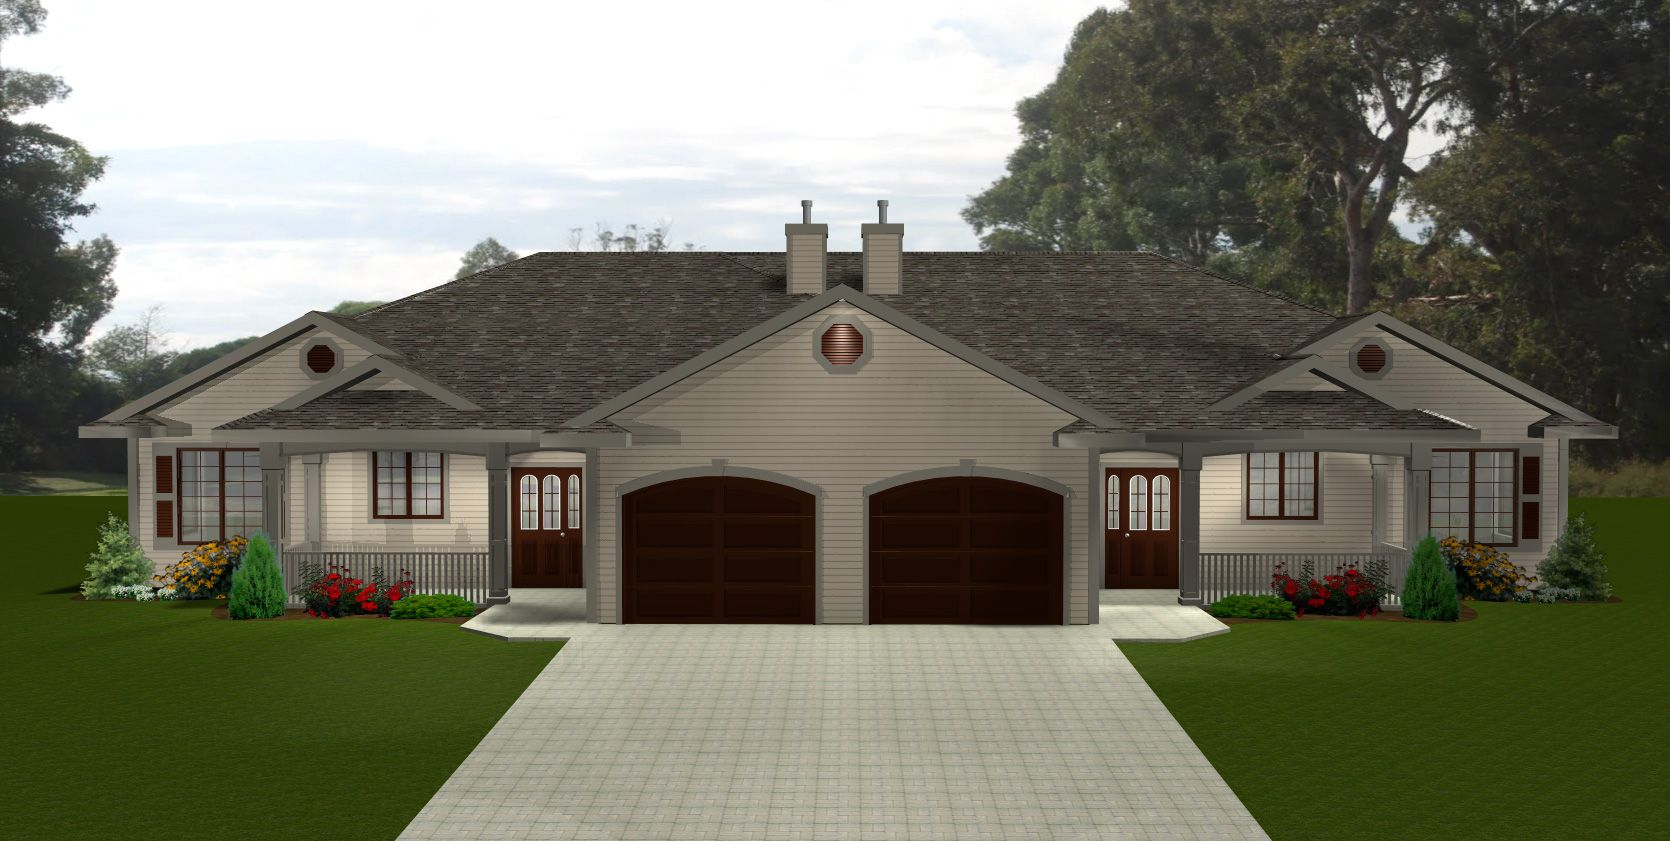 Ranch Style Duplex Home Plans Styles Of Homes With: ranch style duplex plans